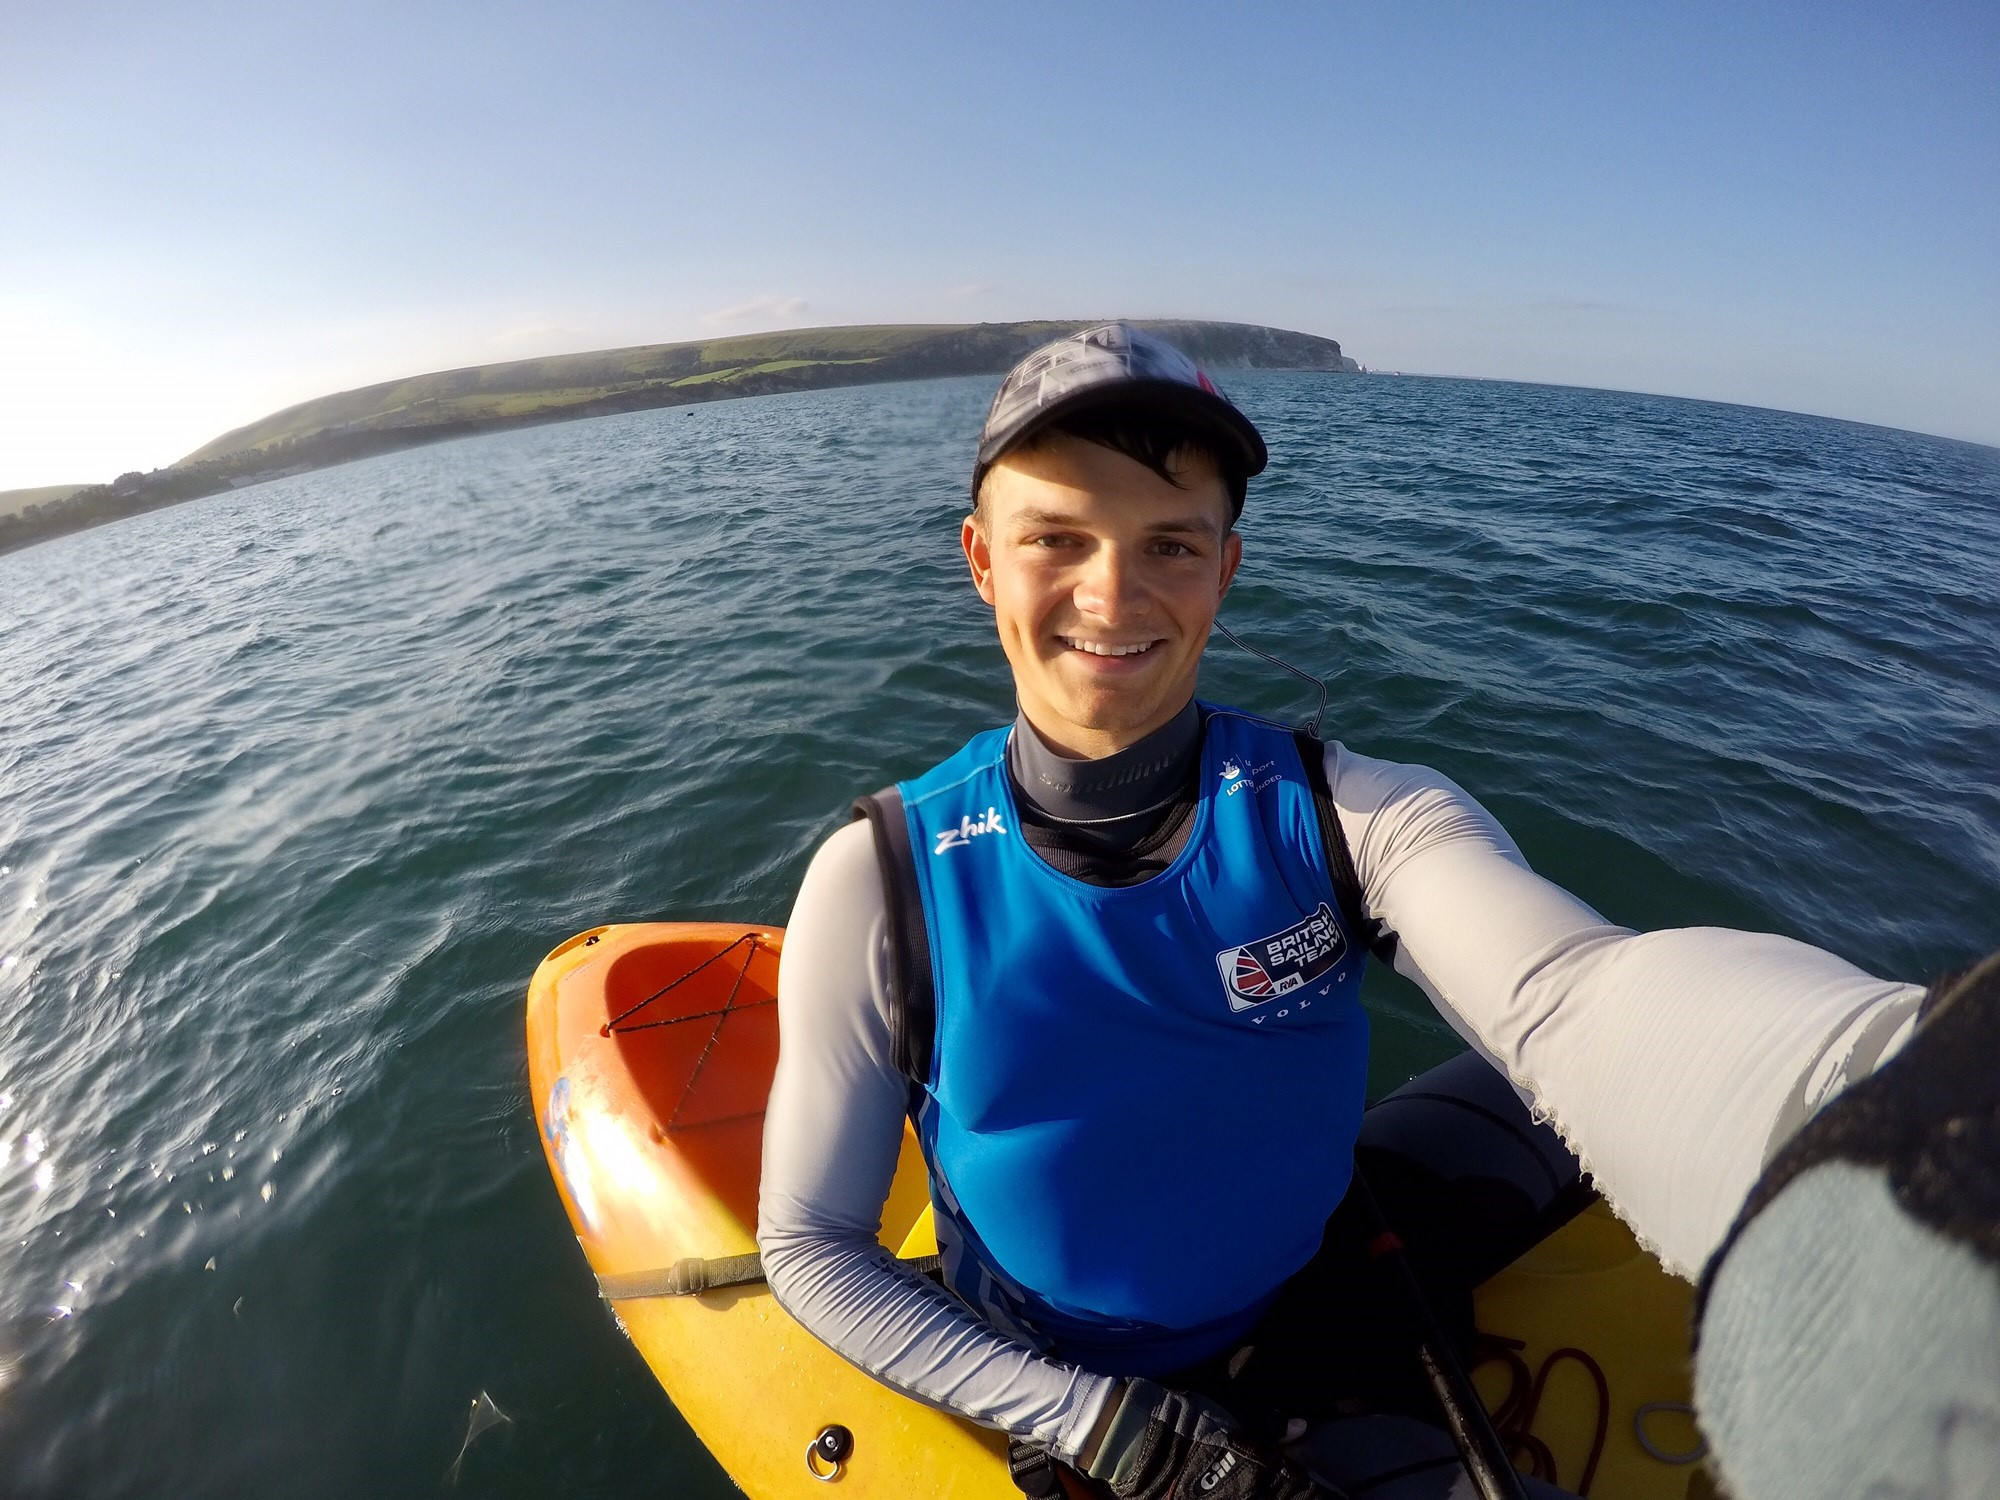 I then returned home for a couple more days of training in the Laser and the gym as well as mixing it up with some kayaking and Waszp sailing in the incredibly hot weather we had!